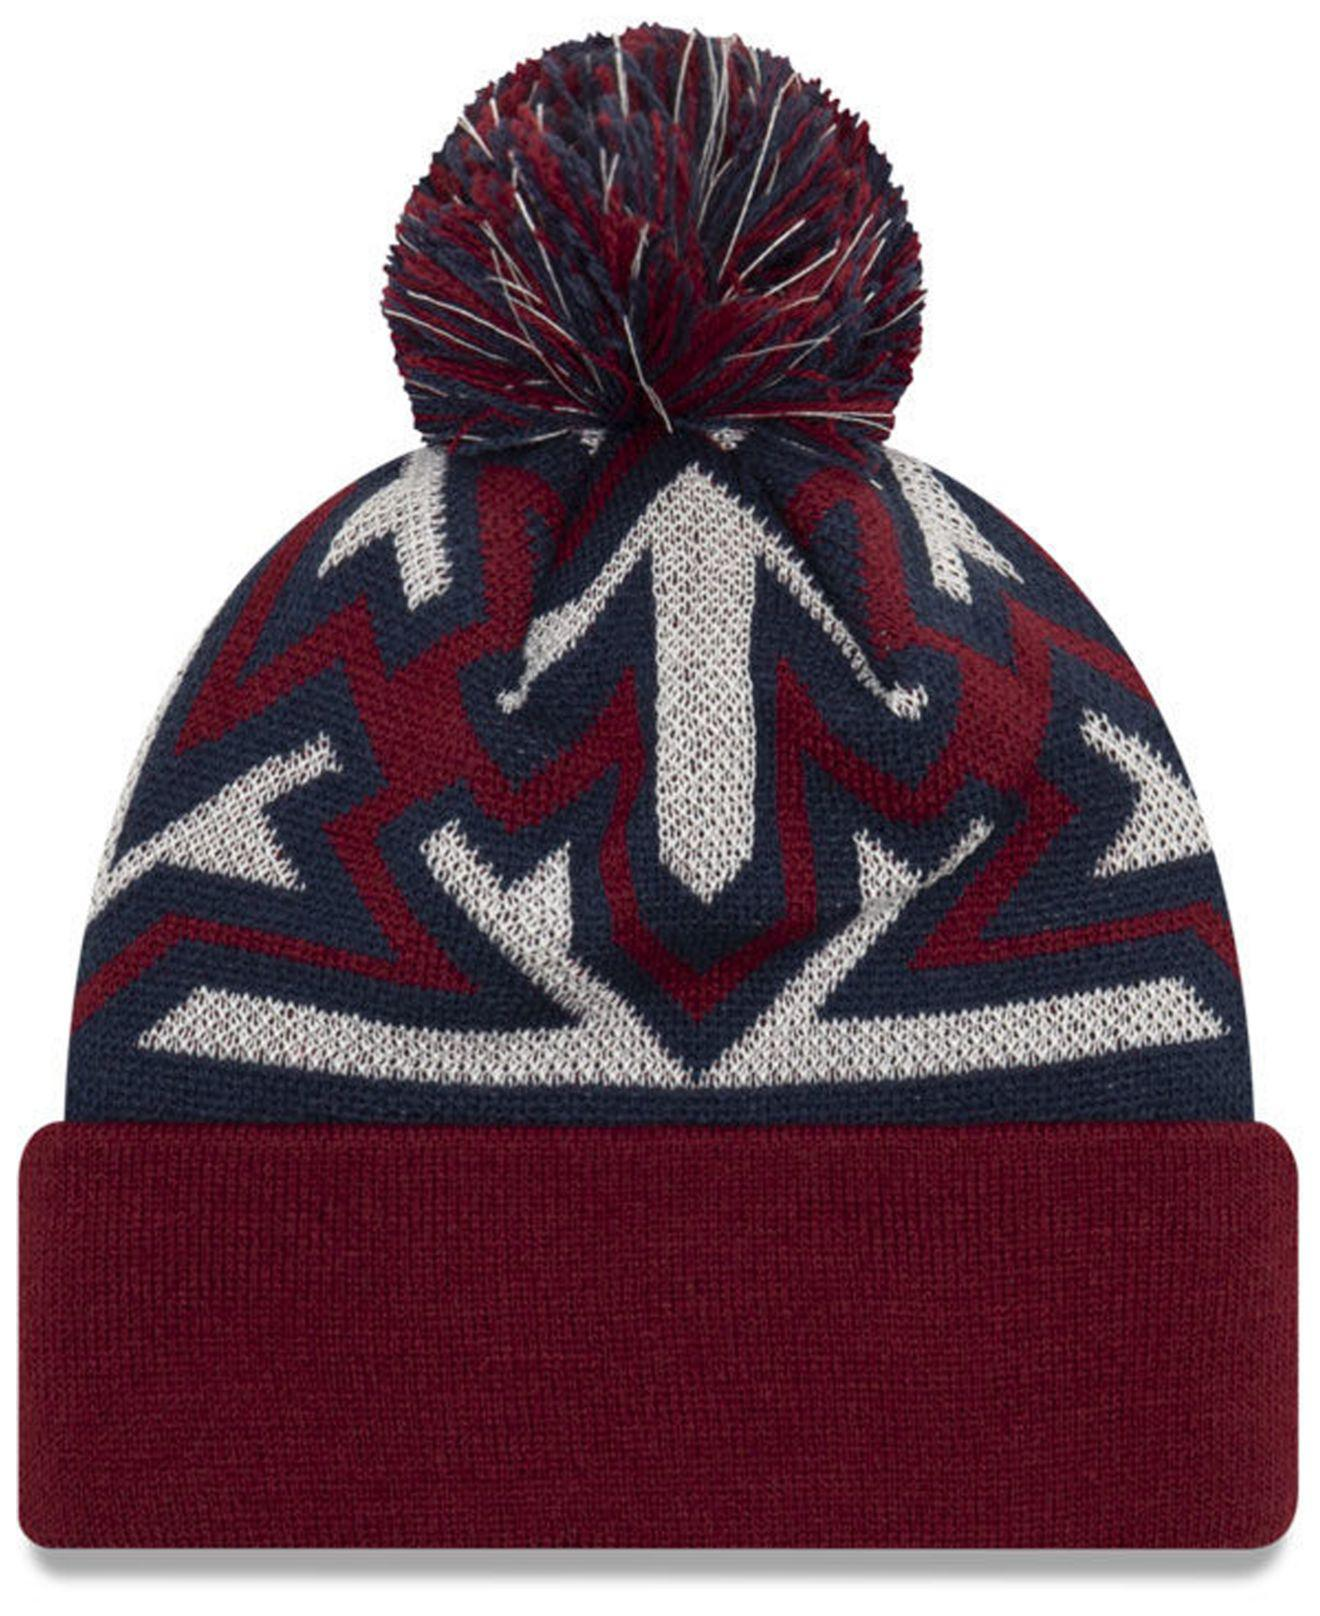 61fea9ce683b7 Lyst - Ktz Cleveland Cavaliers Glowflake Cuff Knit Hat in Blue for Men